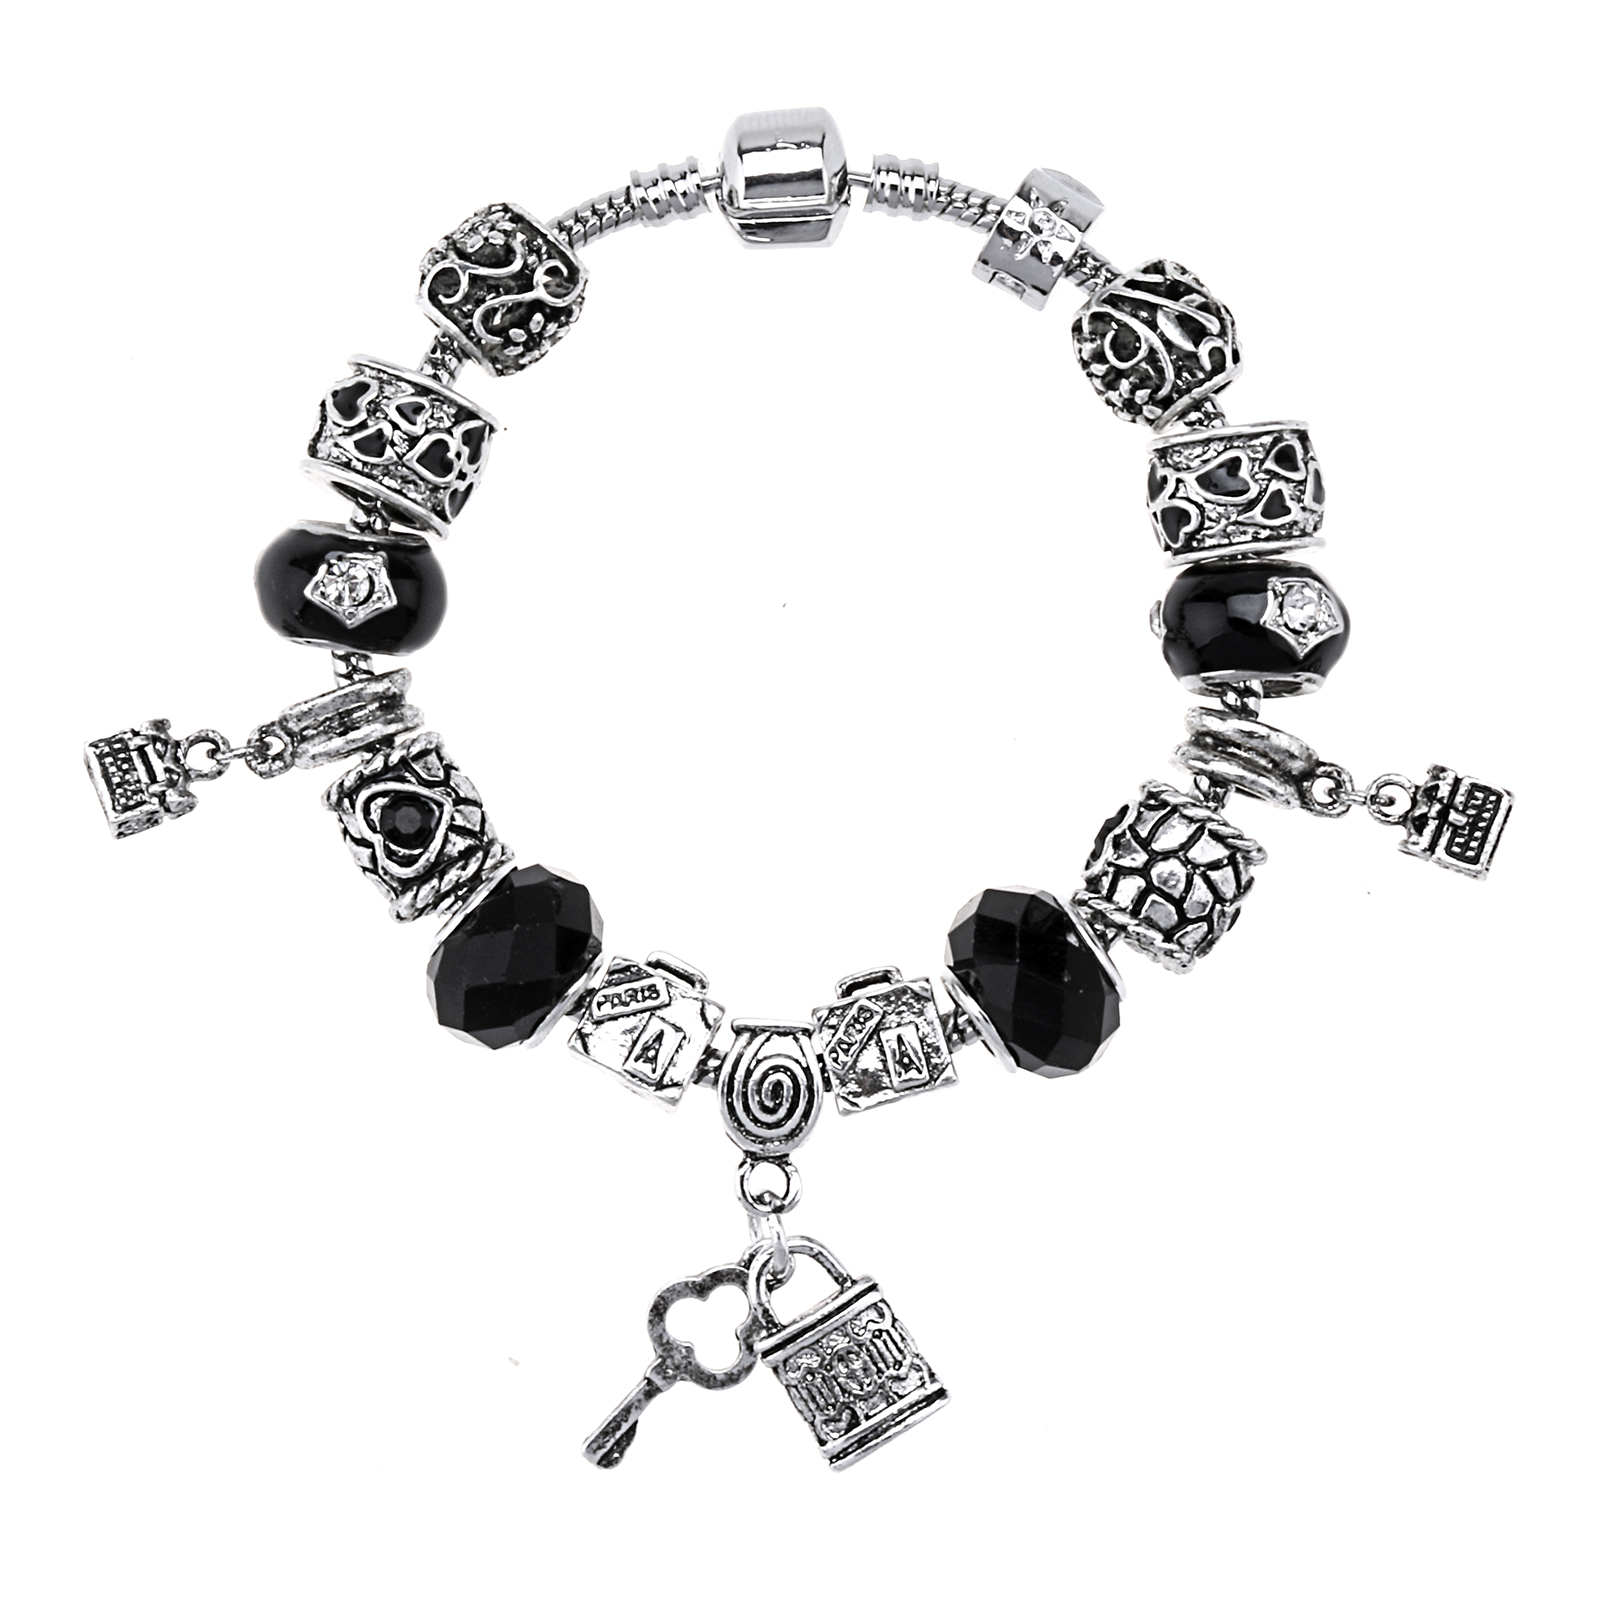 Hot sale Fahion European Style Charm Bracelet With Glass Beads Jewelry for Women